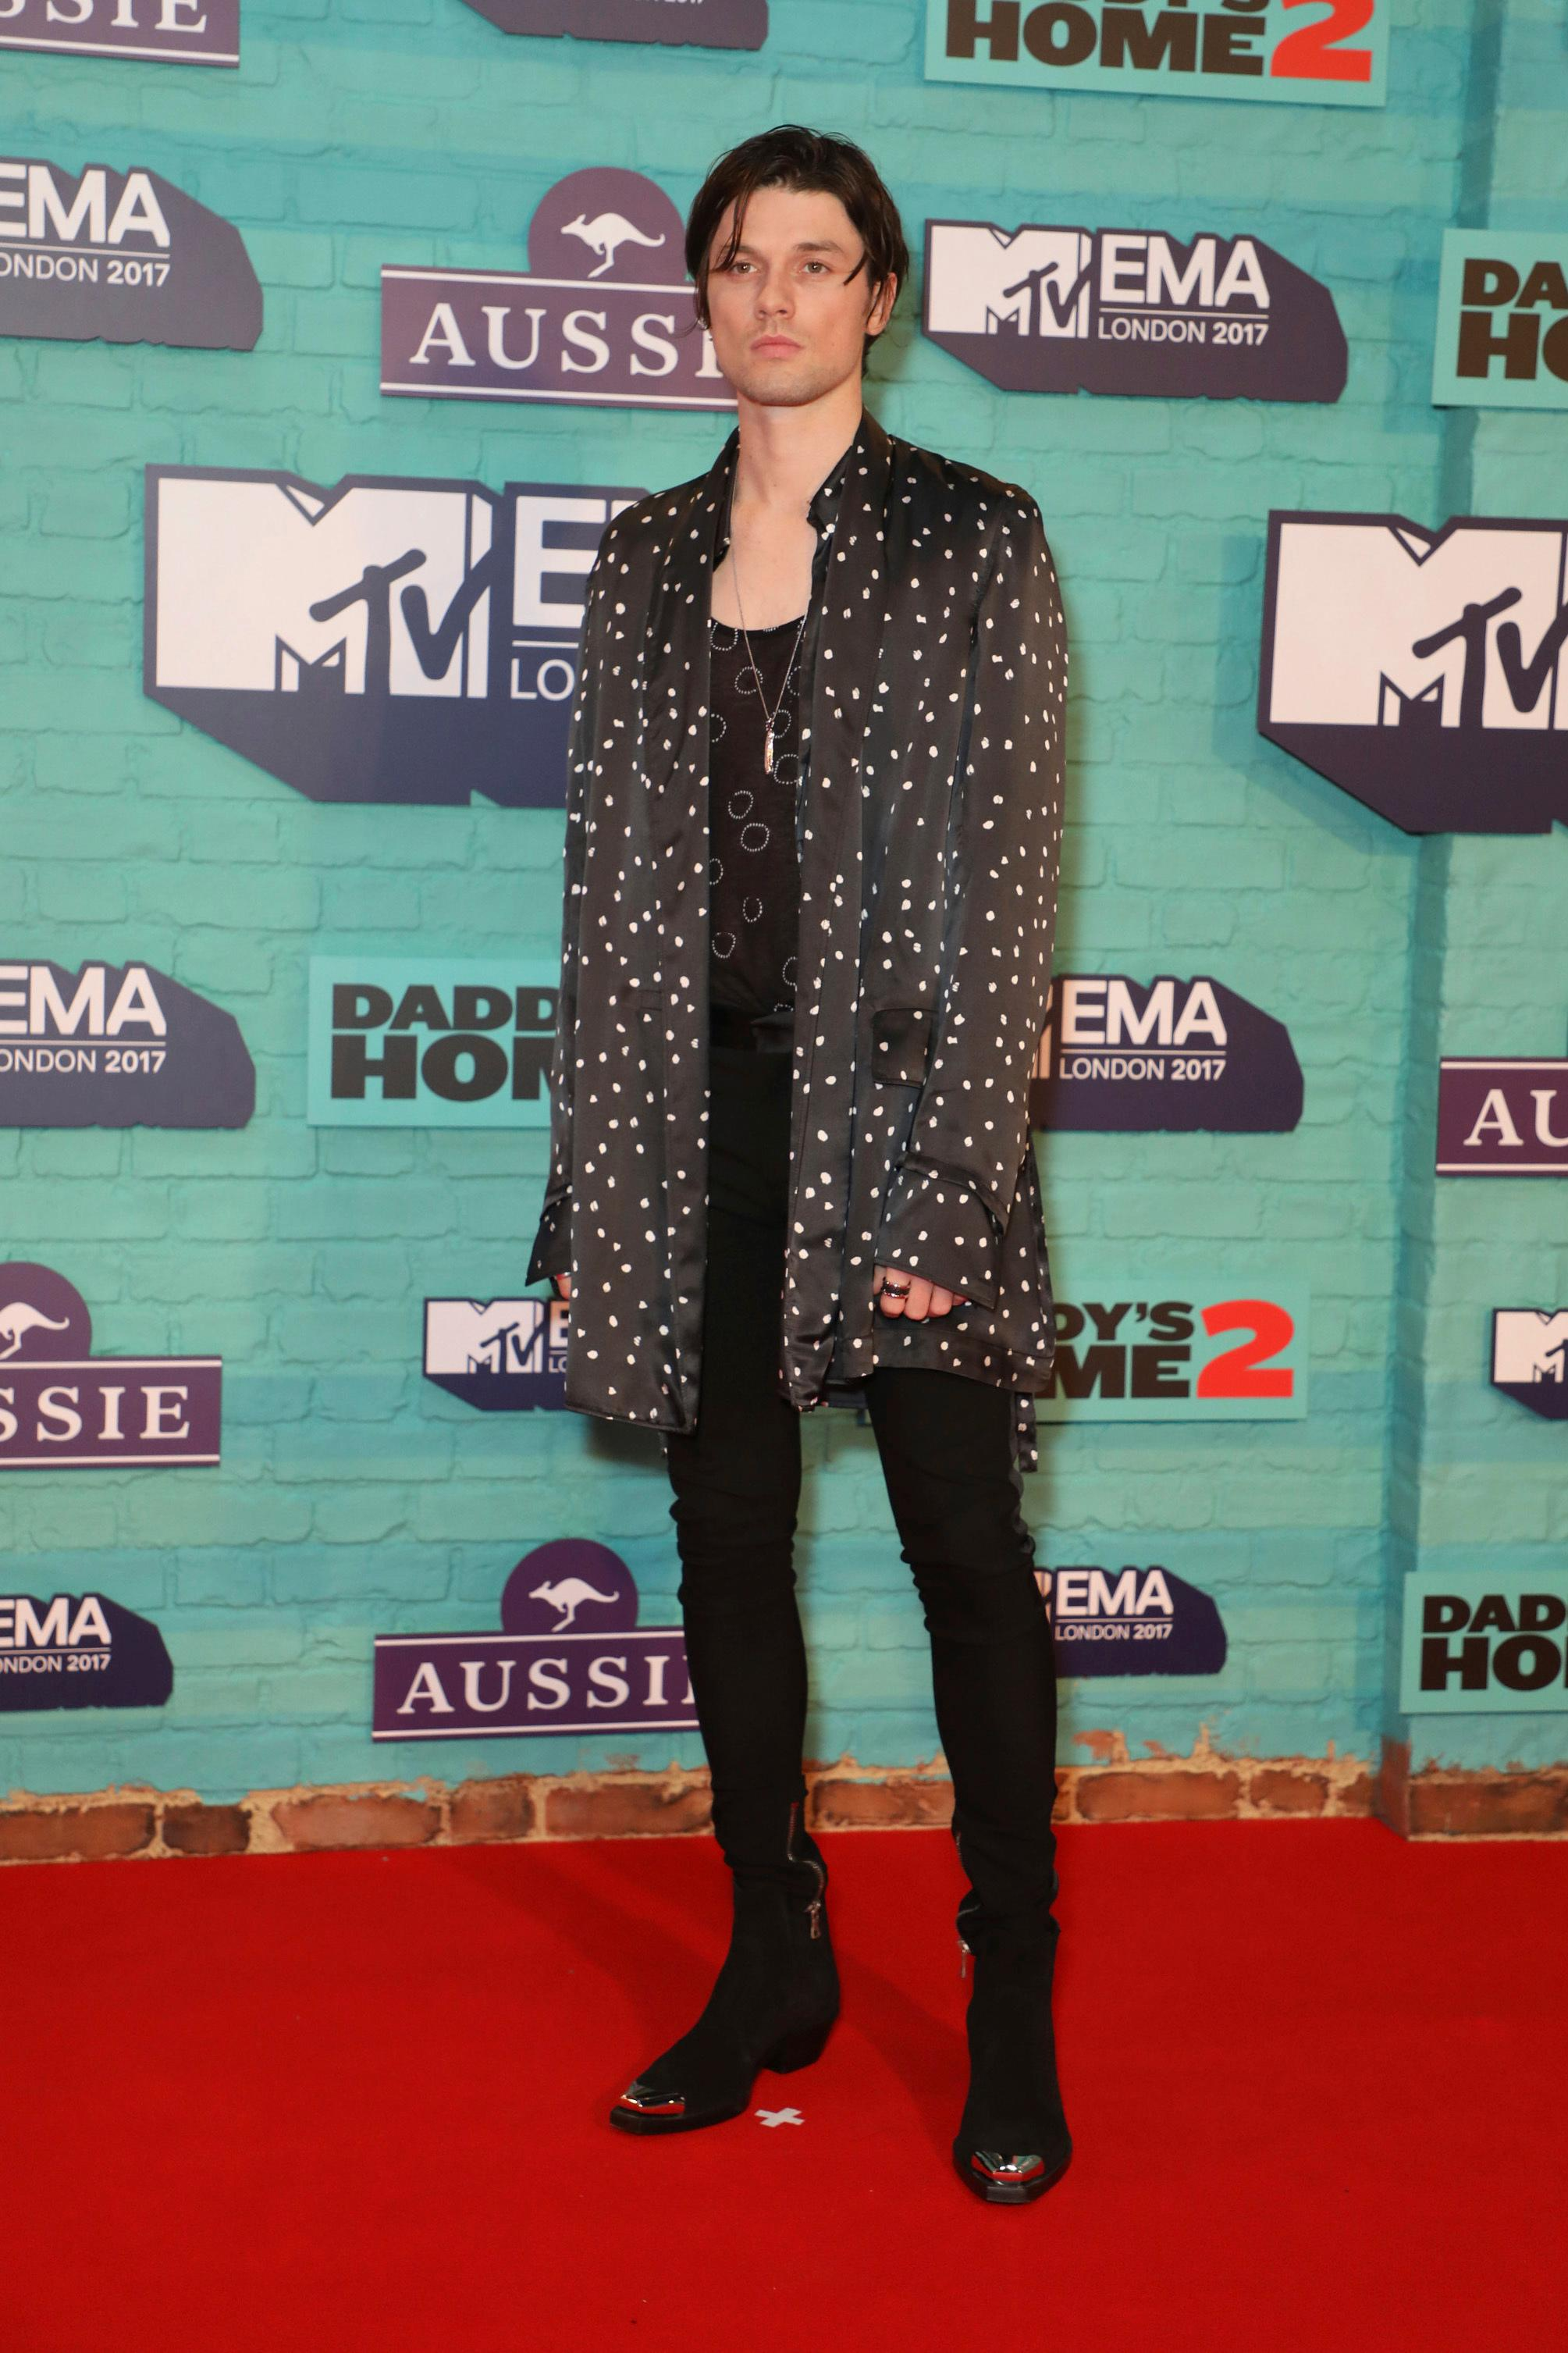 Singer James Bay poses for photographers upon arrival at the MTV European Music Awards 2017 in London, Sunday, Nov. 12th, 2017. (Photo by Vianney Le Caer/Invision/AP)